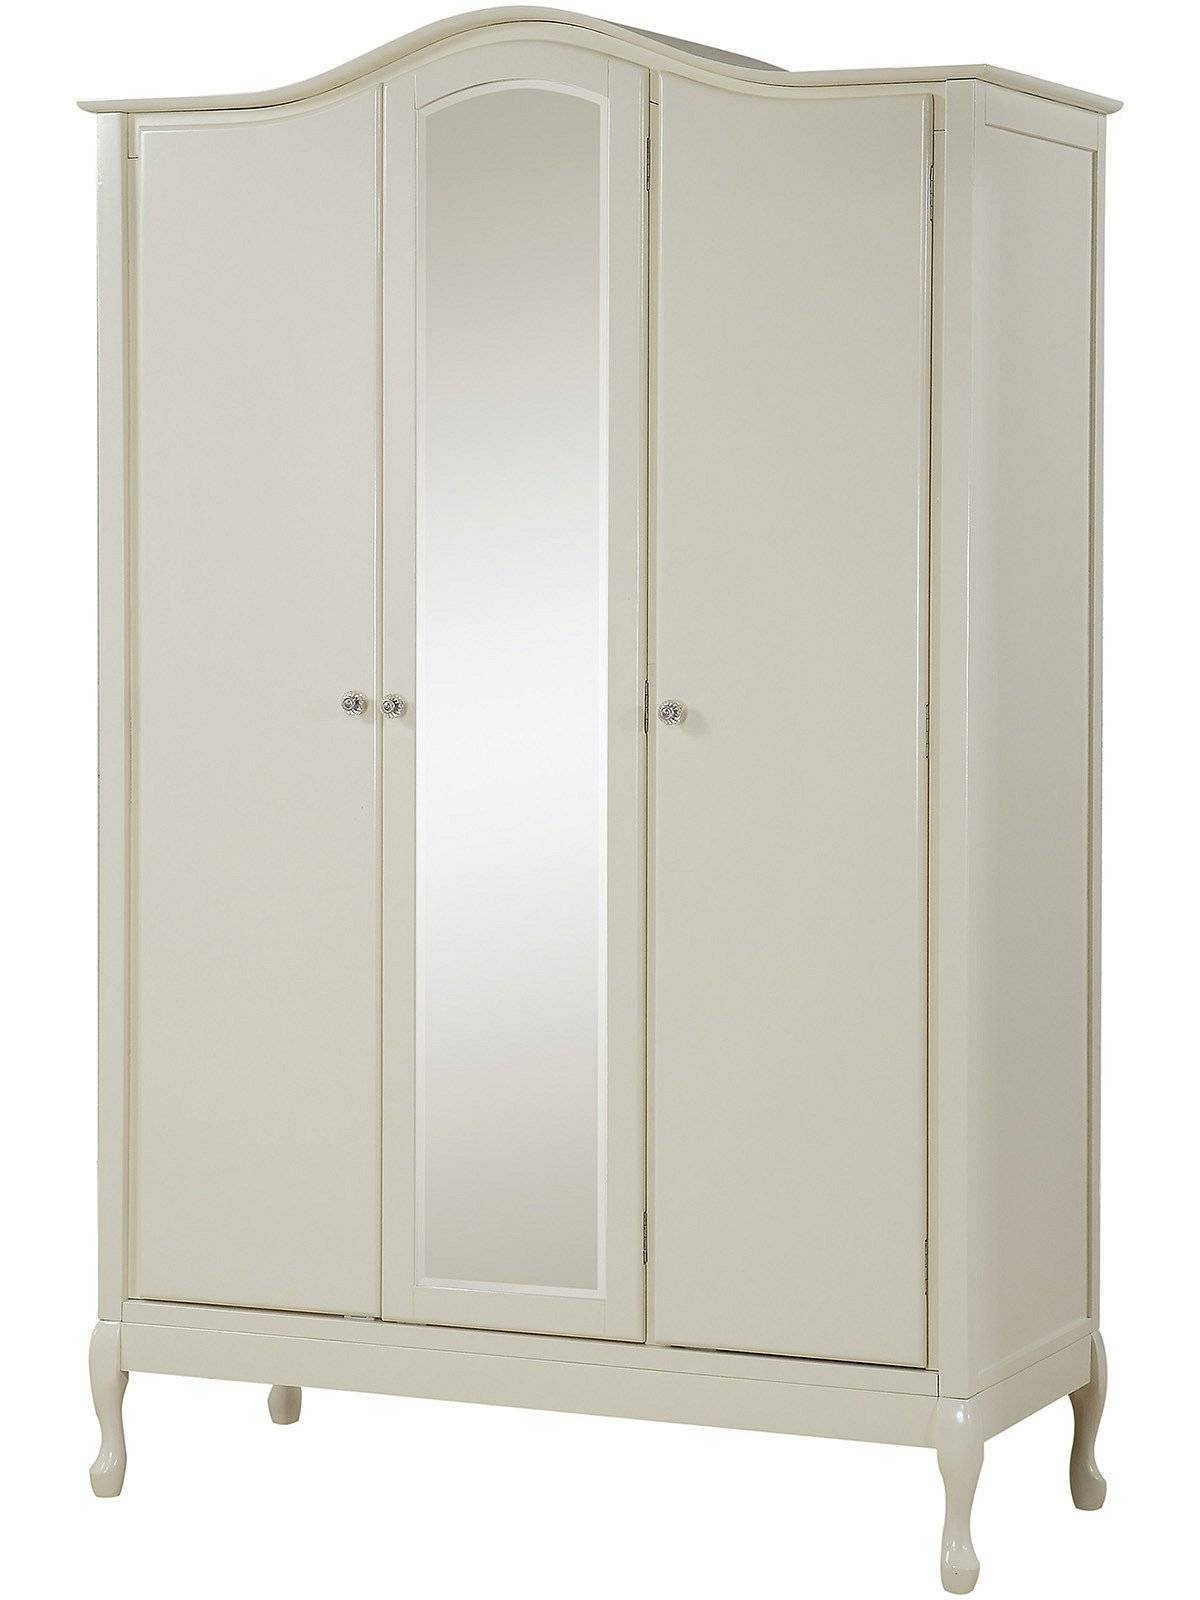 Gfw – The Furniture Warehouse – Loire 3 Door Robe With Mirror Regarding 3 Door French Wardrobes (View 6 of 15)